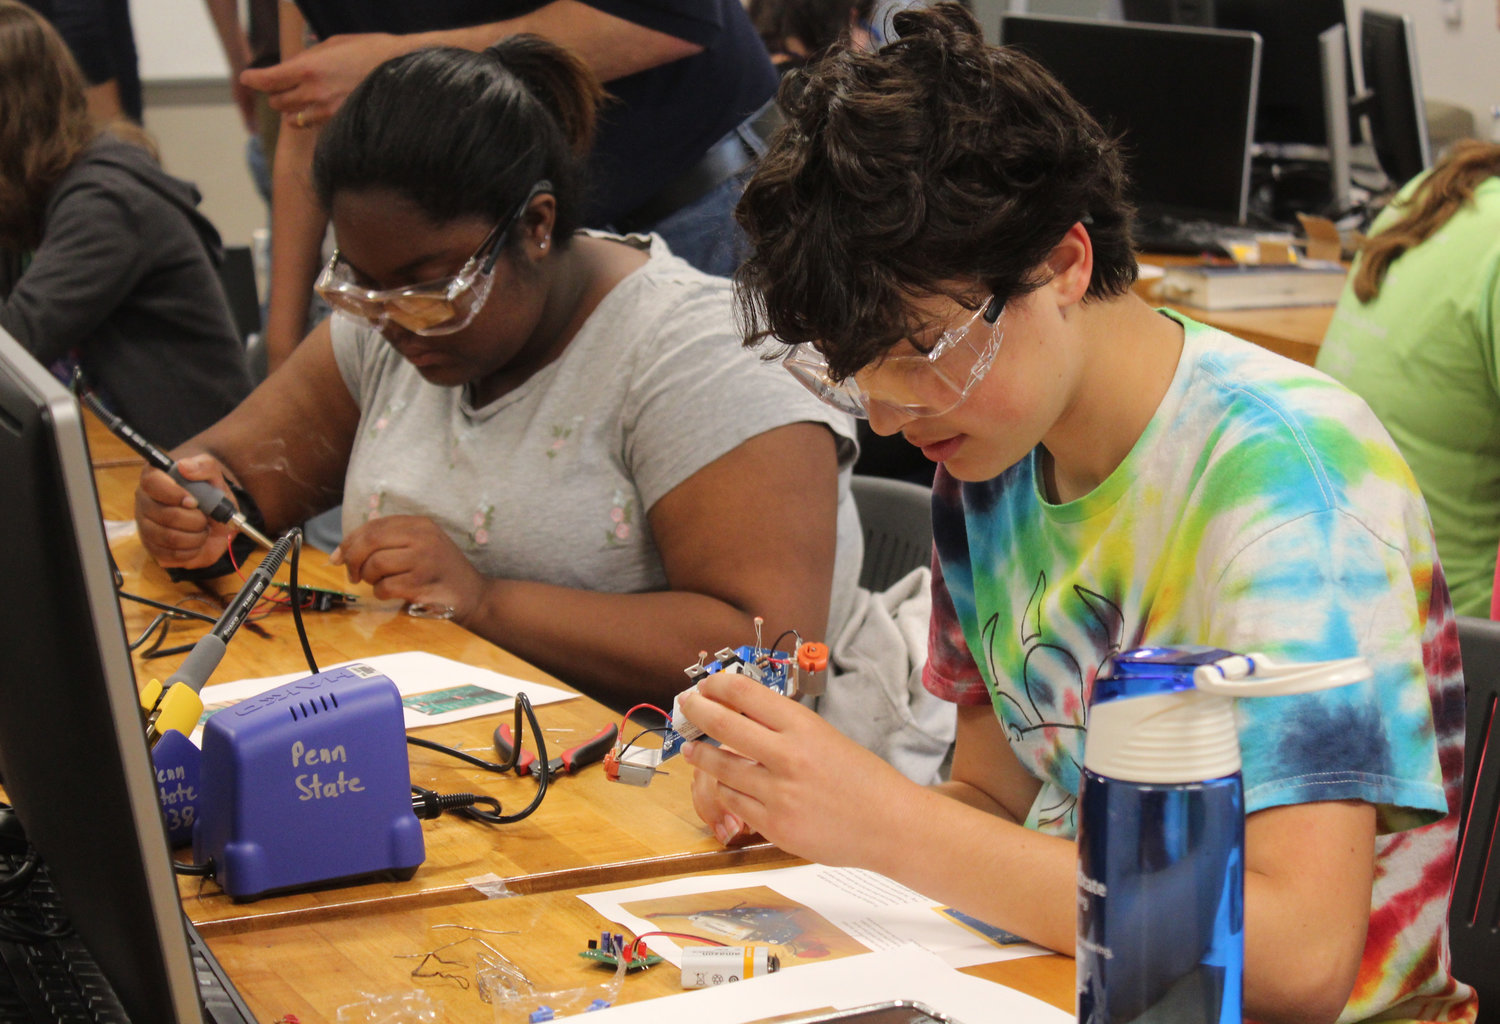 Harrisburg Academy student Linsai Jackson and Central Dauphin student Callie Ritter work during the electrical engineering lab during Penn State Harrisburg's STEM Summer Enrichment Program on June 19.